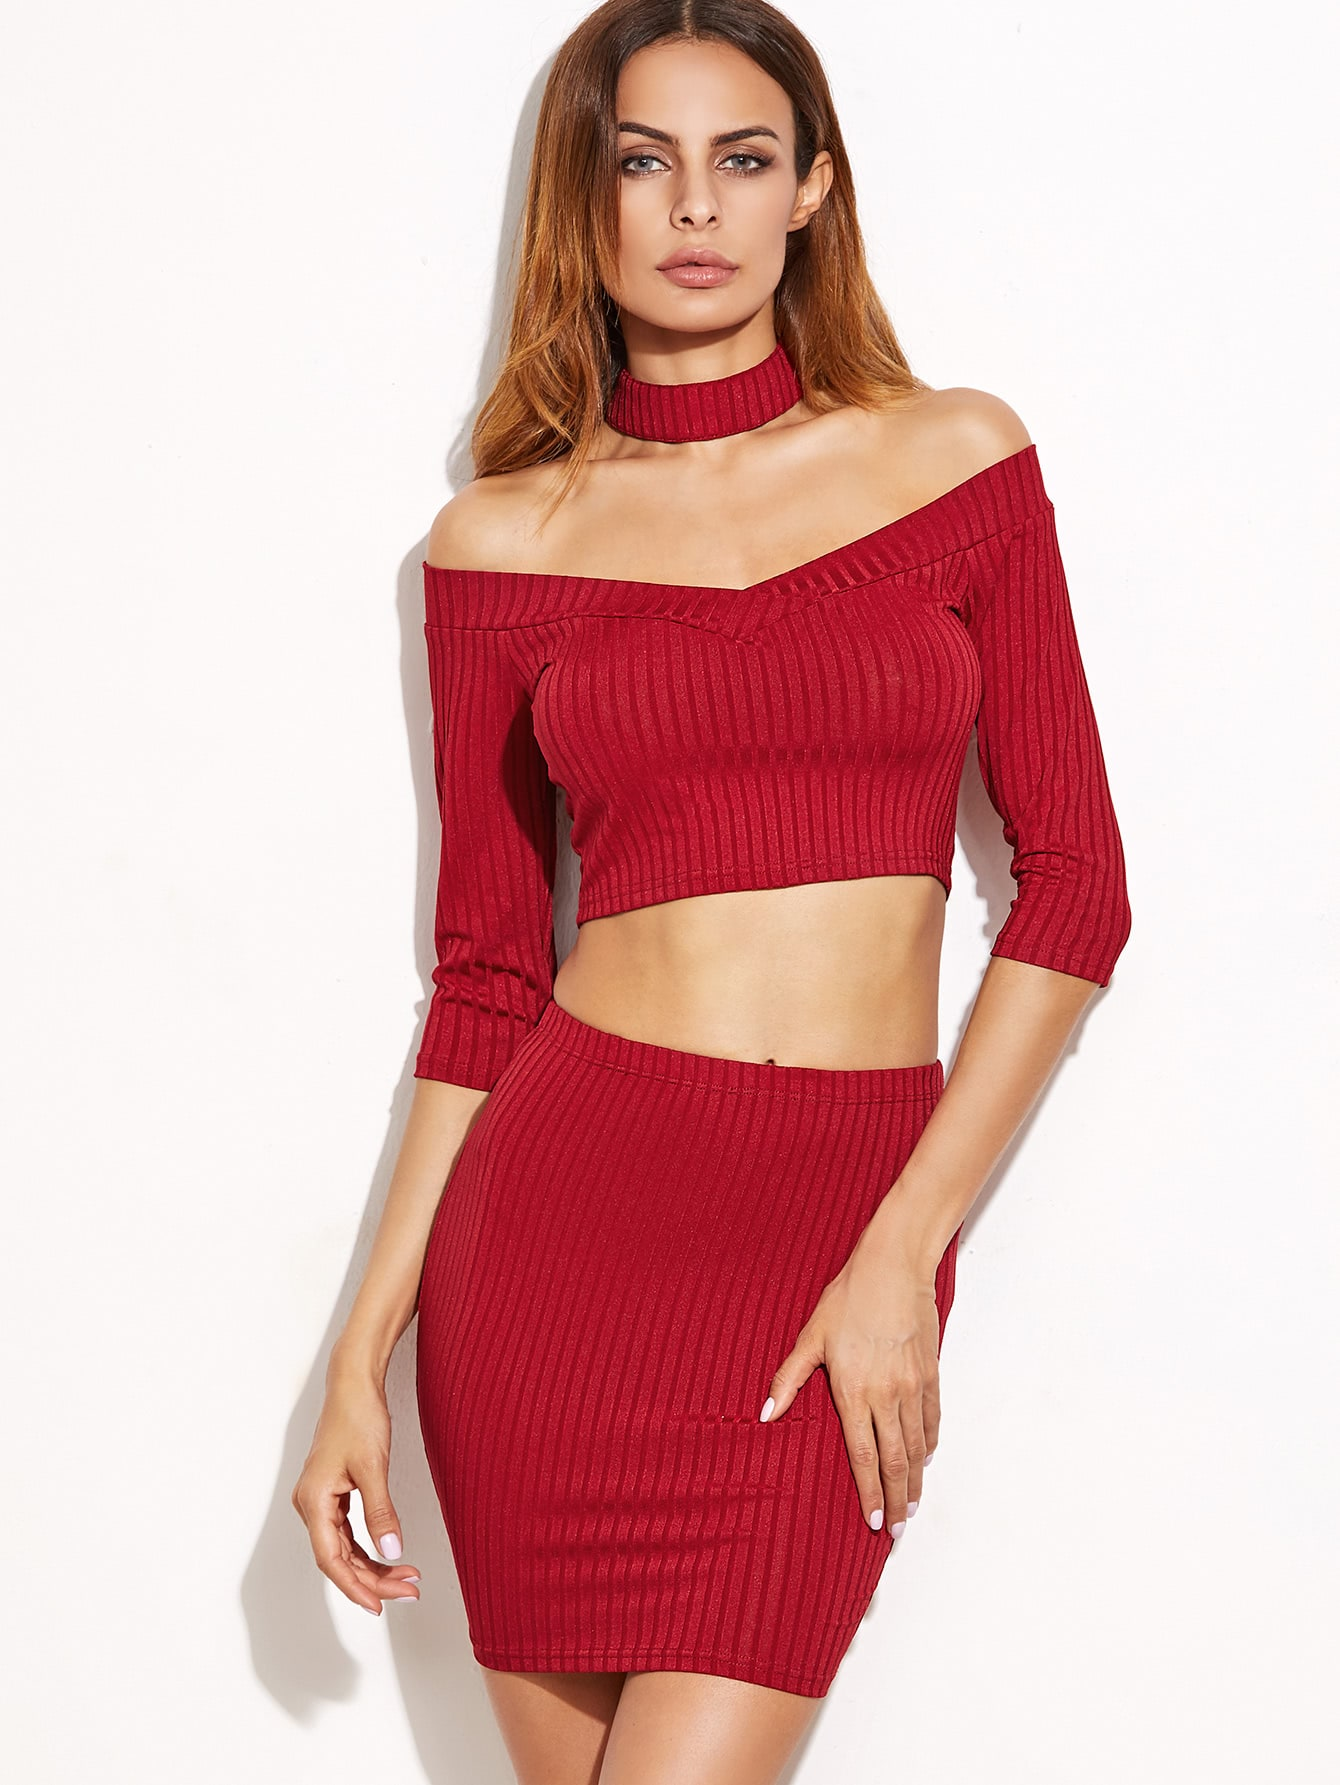 Off Shoulder Ribbed Knit T-shirt With Skirt twopiece161102701